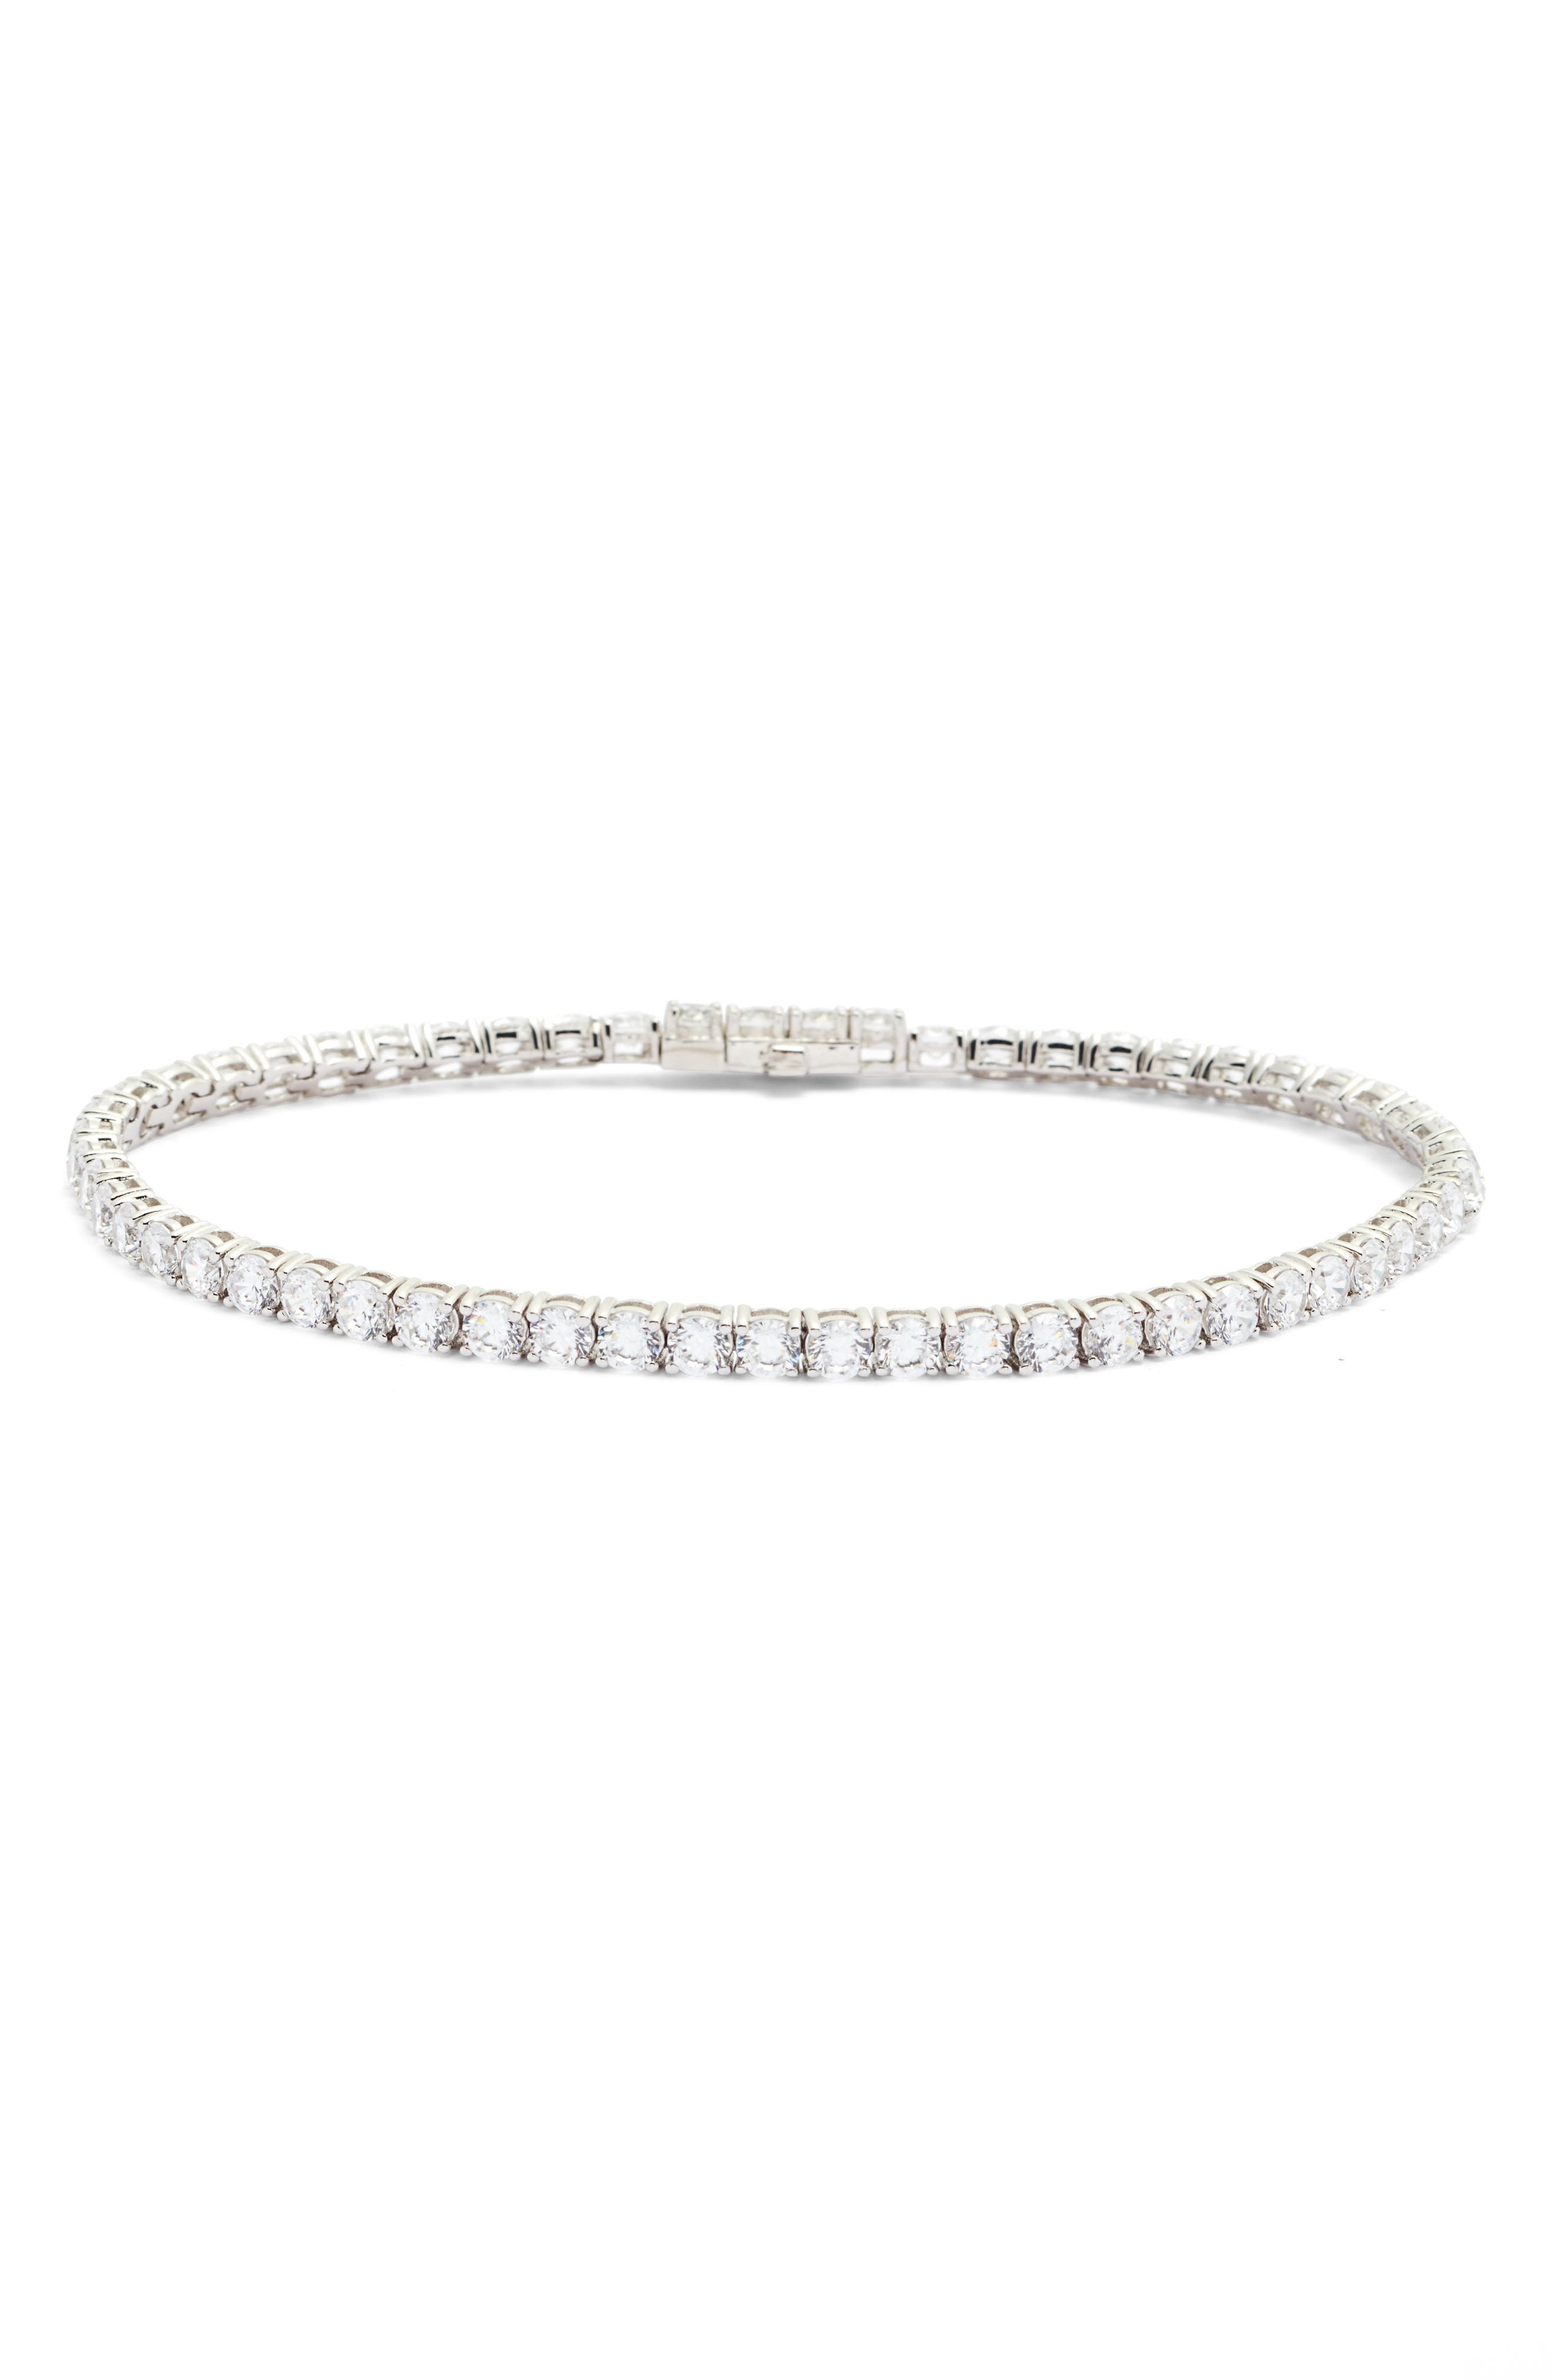 Classic Simulated Diamond Tennis Bracelet,                             Main thumbnail 1, color,                             SILVER